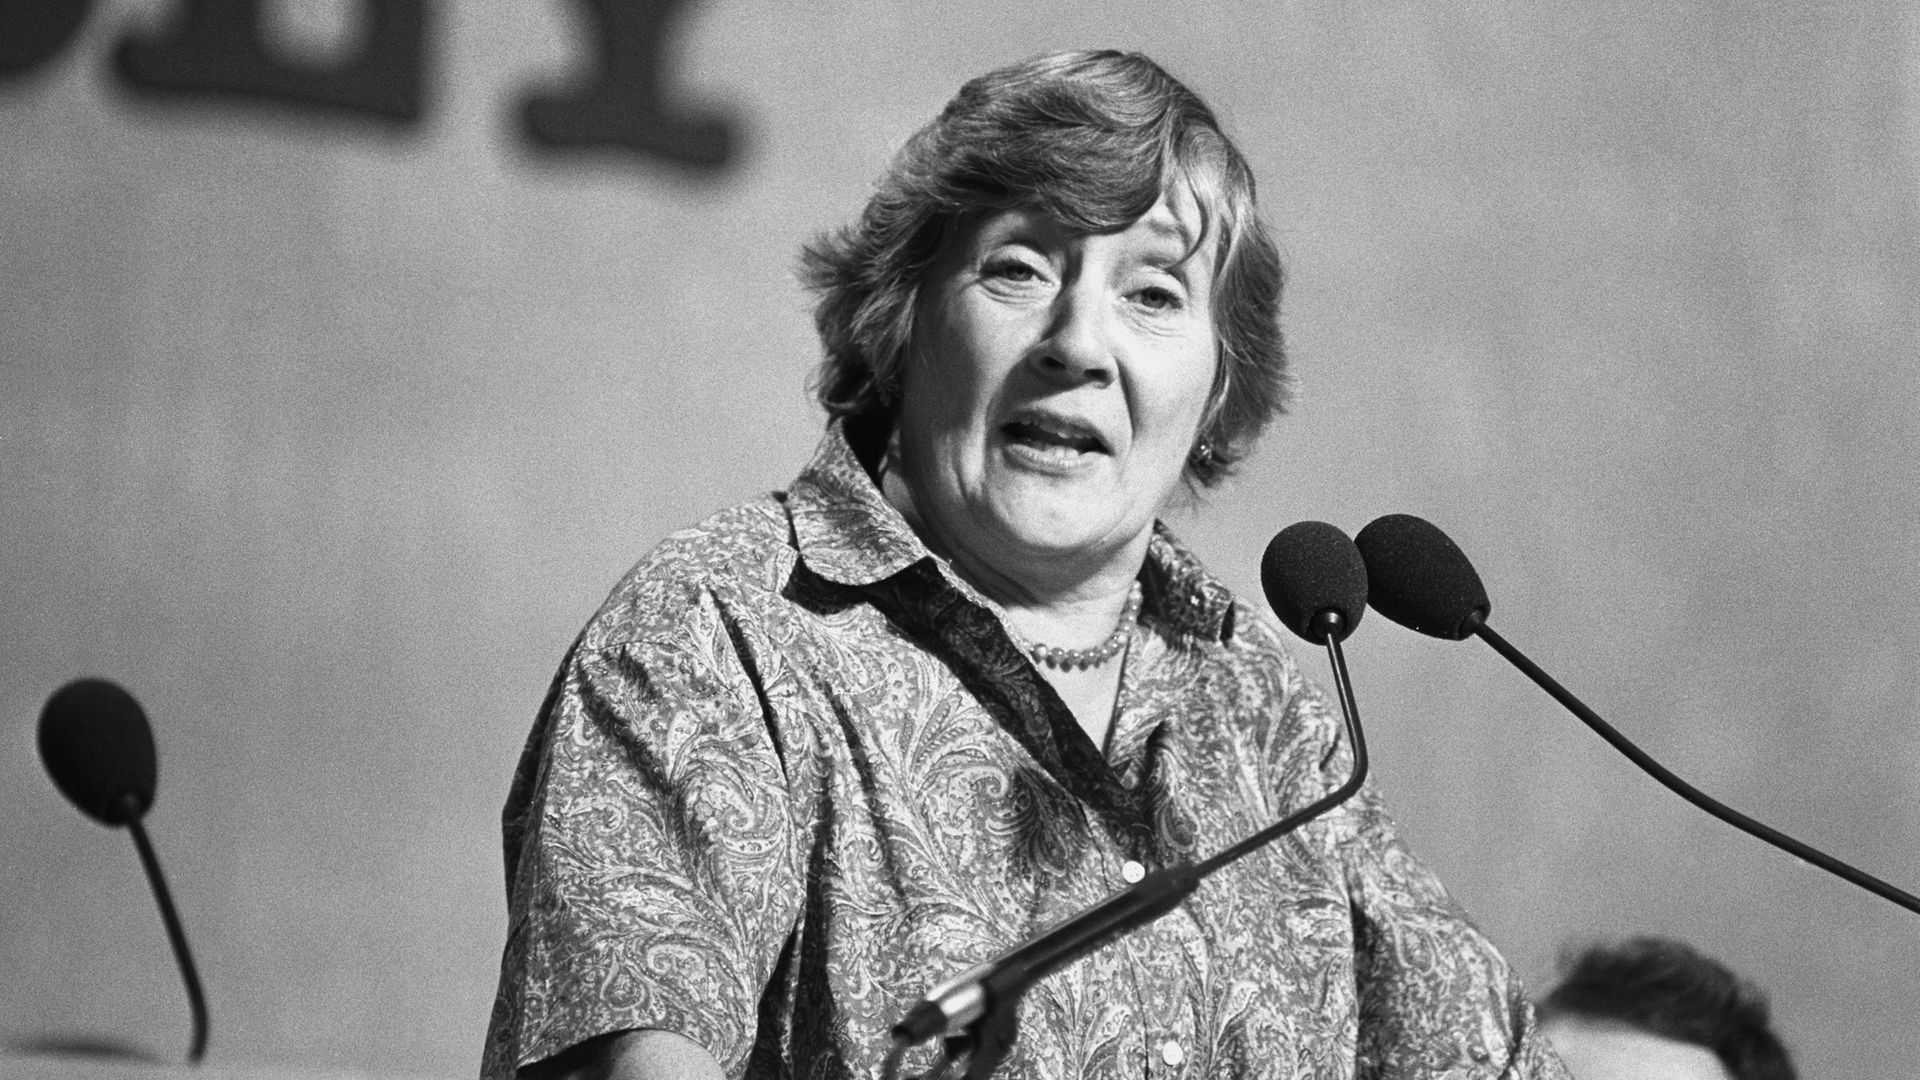 SDP President Shirley Williams addressing the first formal session of the Liberal Assembly in Harrogate - Credit: PA